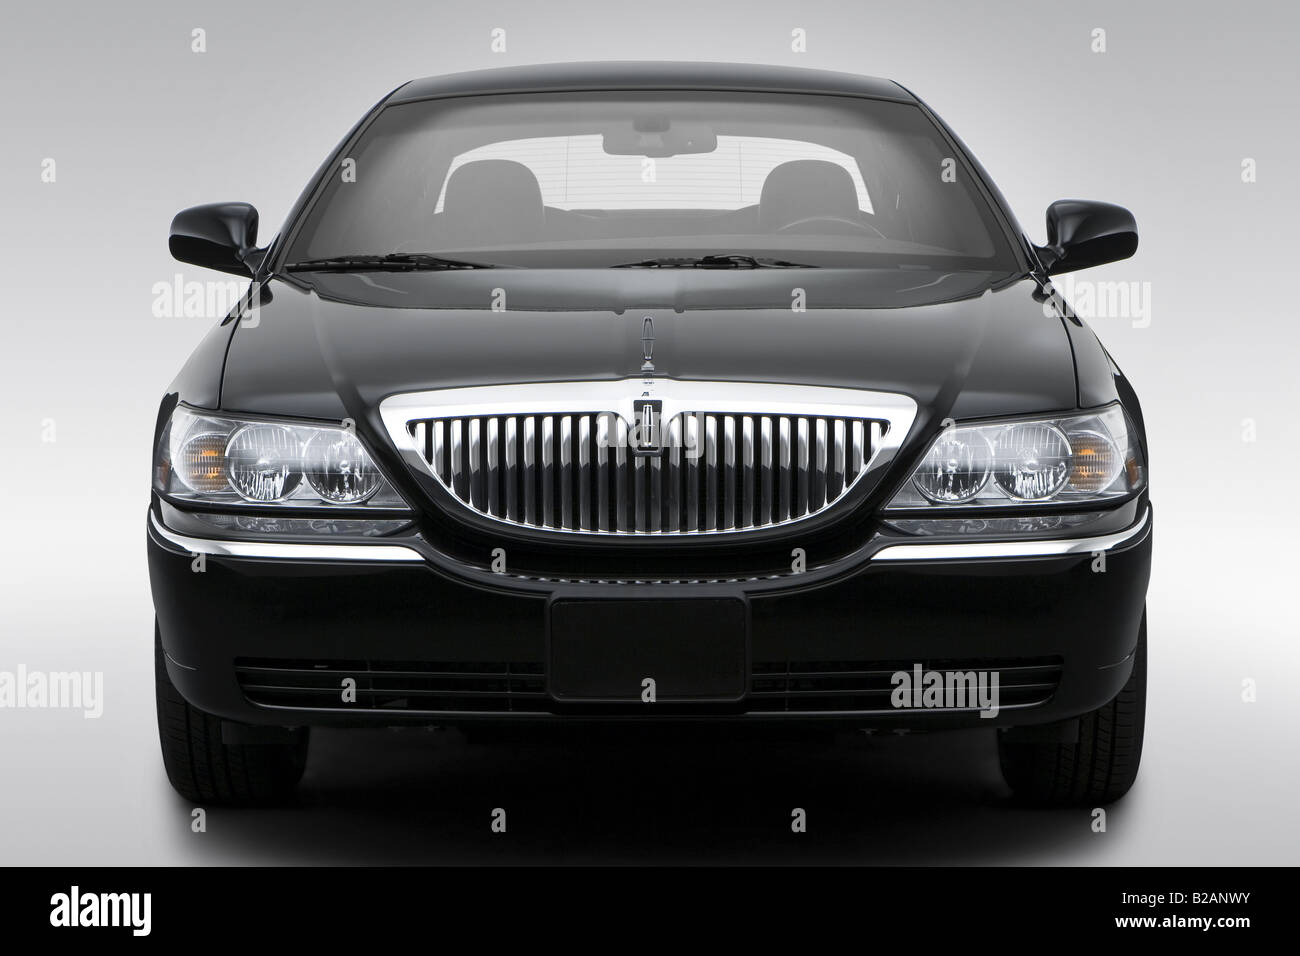 hight resolution of 2008 lincoln town car signature limited in black low wide front stock image